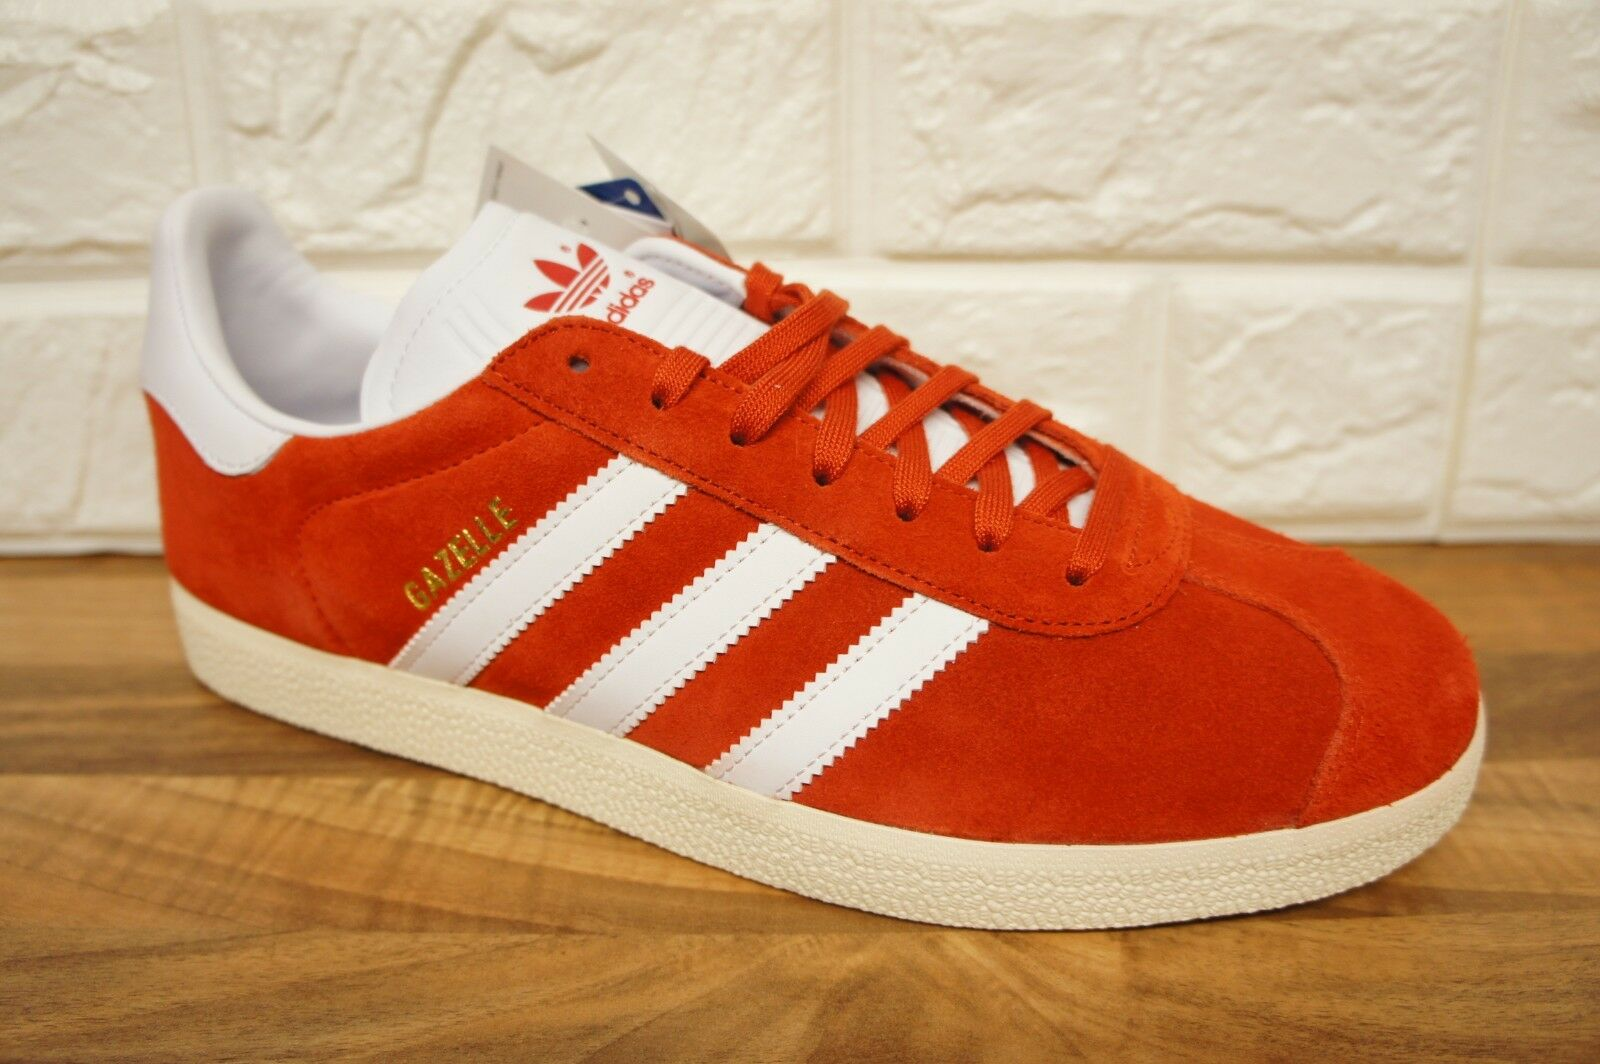 Adidas Gazelle Mens Größe 9.5 UK rot Weiß Leather Suede Trainers Brand New Boxed